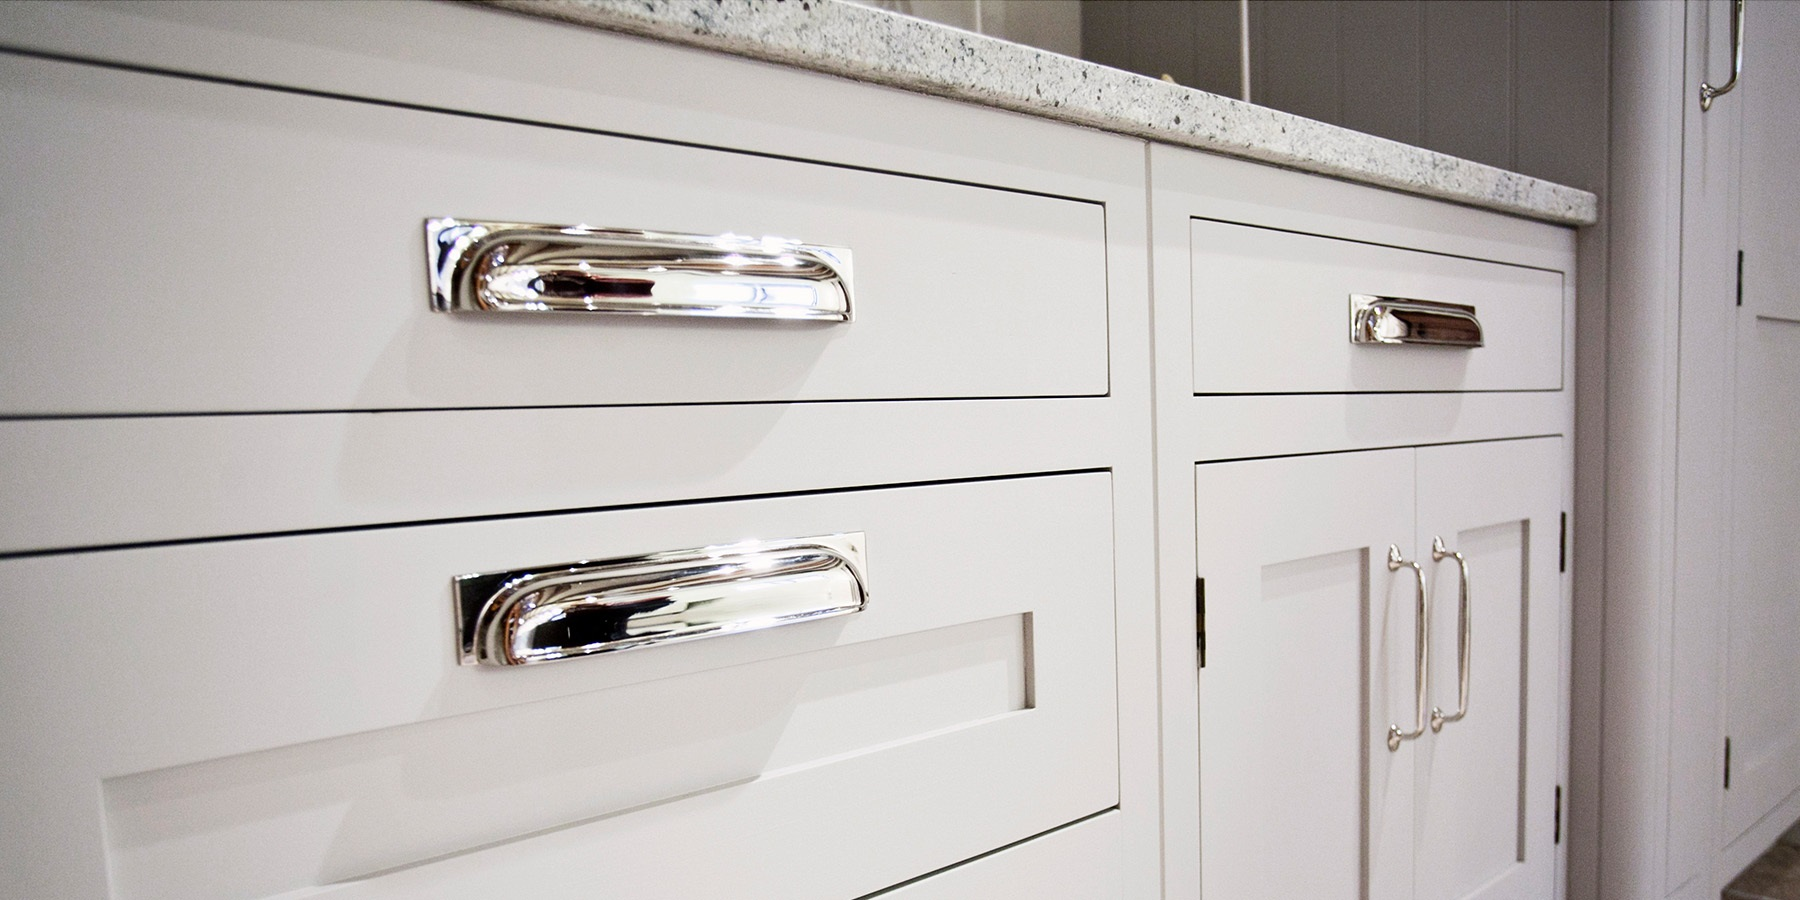 White Handmade Shaker Kitchen - Burlanes Hoyden kitchen detailing with silver handles.